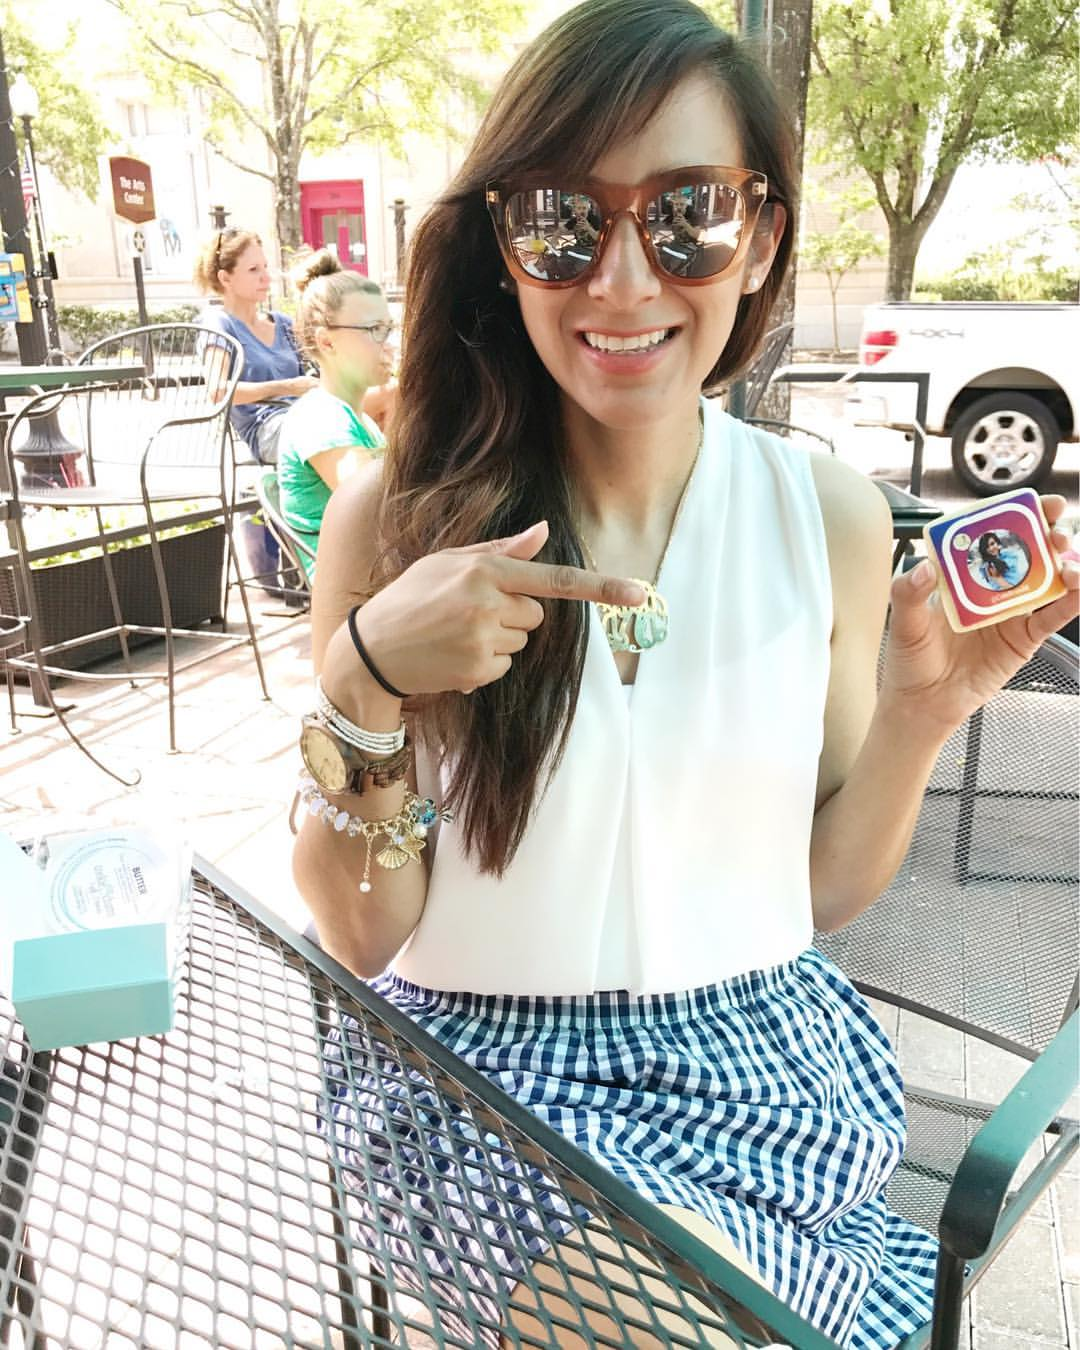 gingham, jcrew, whatiwore, daring, liketoknow.it, summer shopping, women clothes, fashion, stylist, fashion blogger, mycookiecharm